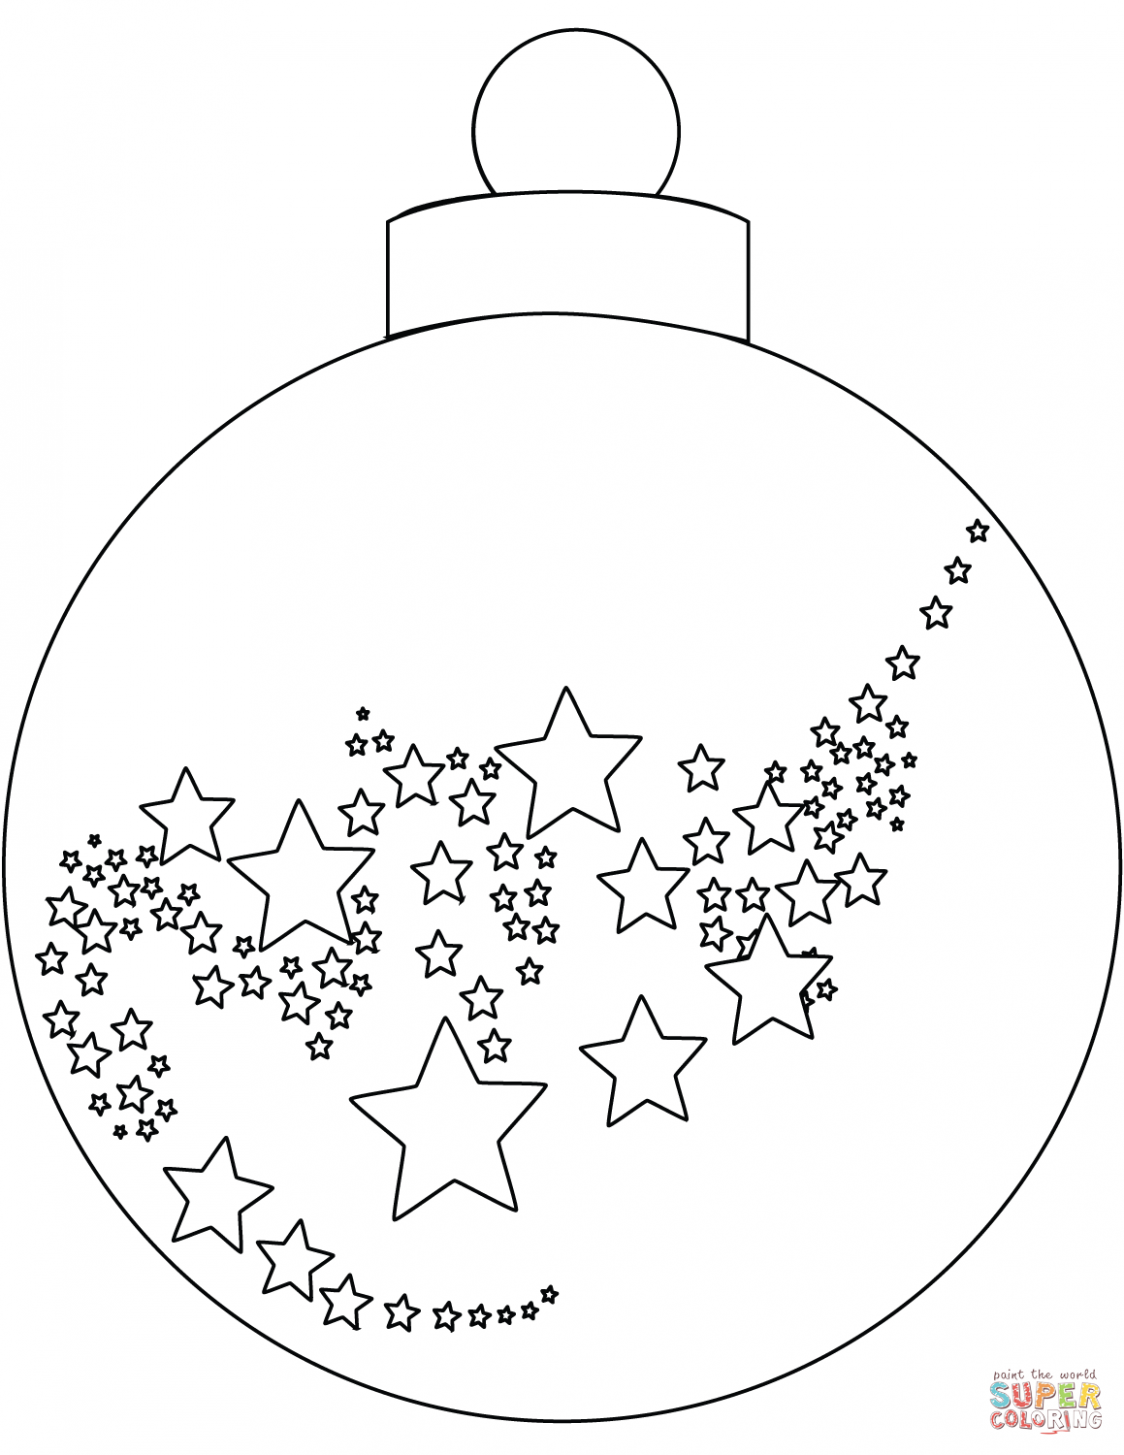 Christmas Ornament coloring page | Free Printable Coloring Pages